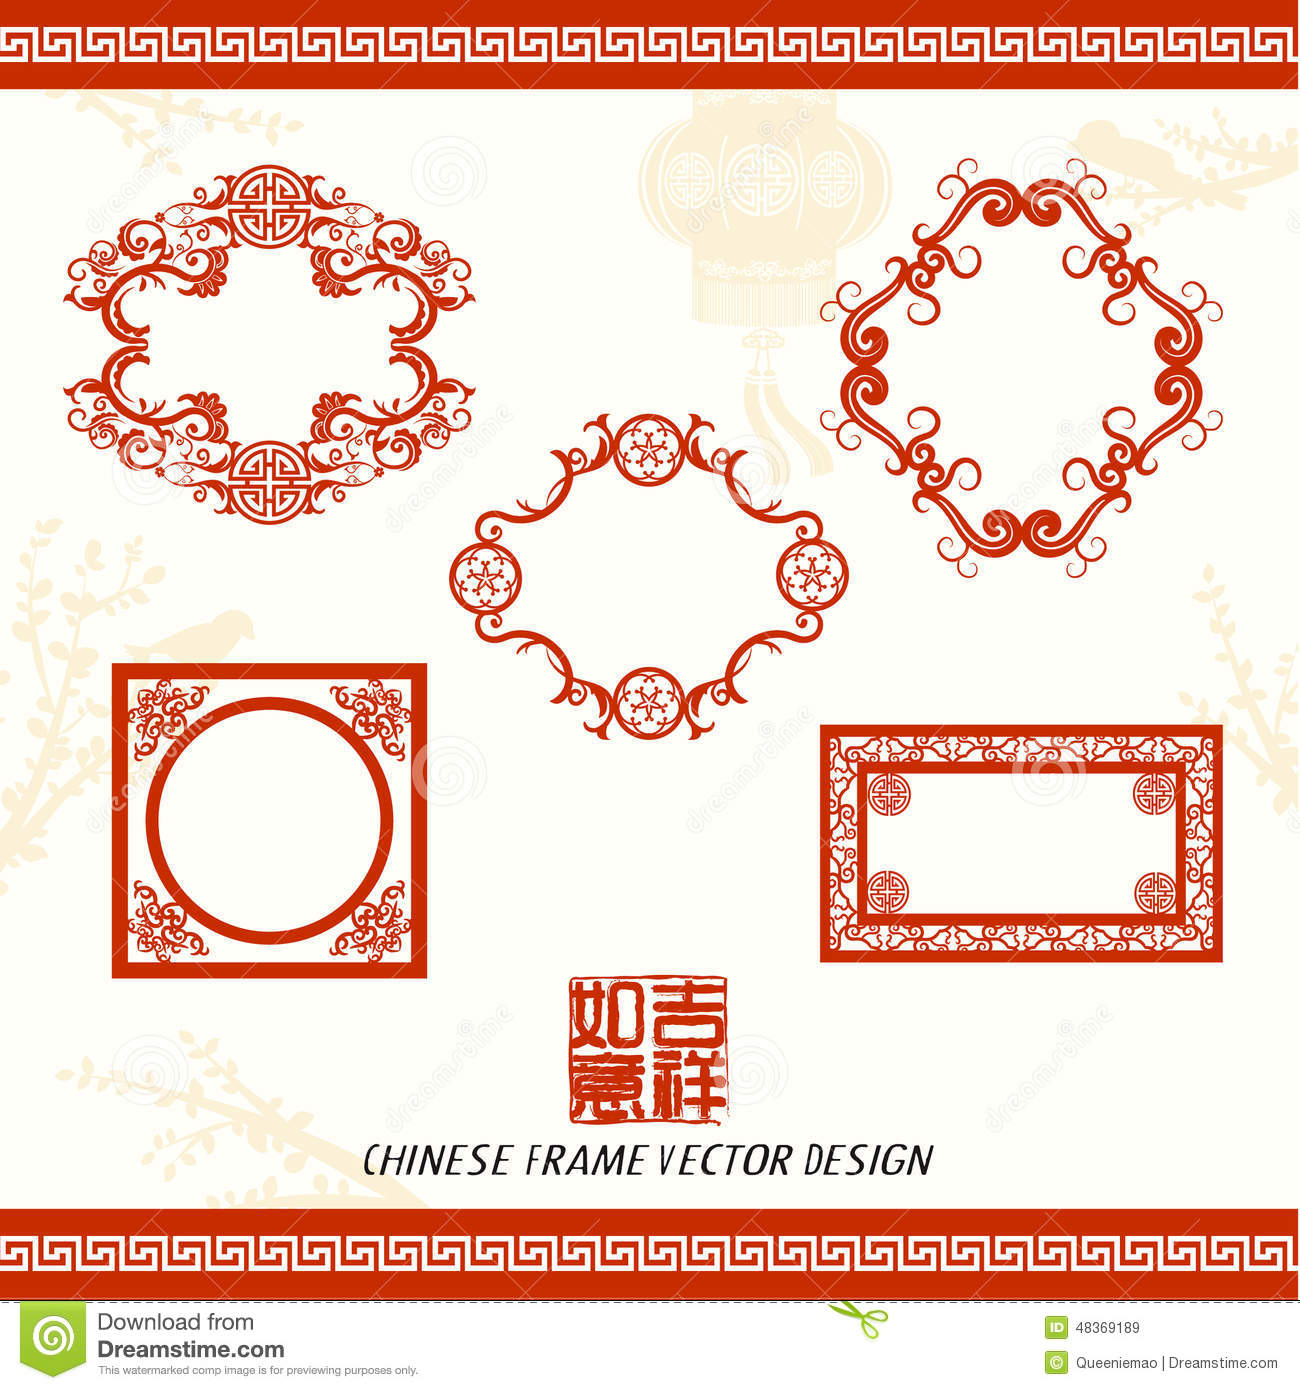 Oriental chinese new year vector design stock vector oriental chinese new year vector design calligraphy ornament jeuxipadfo Image collections